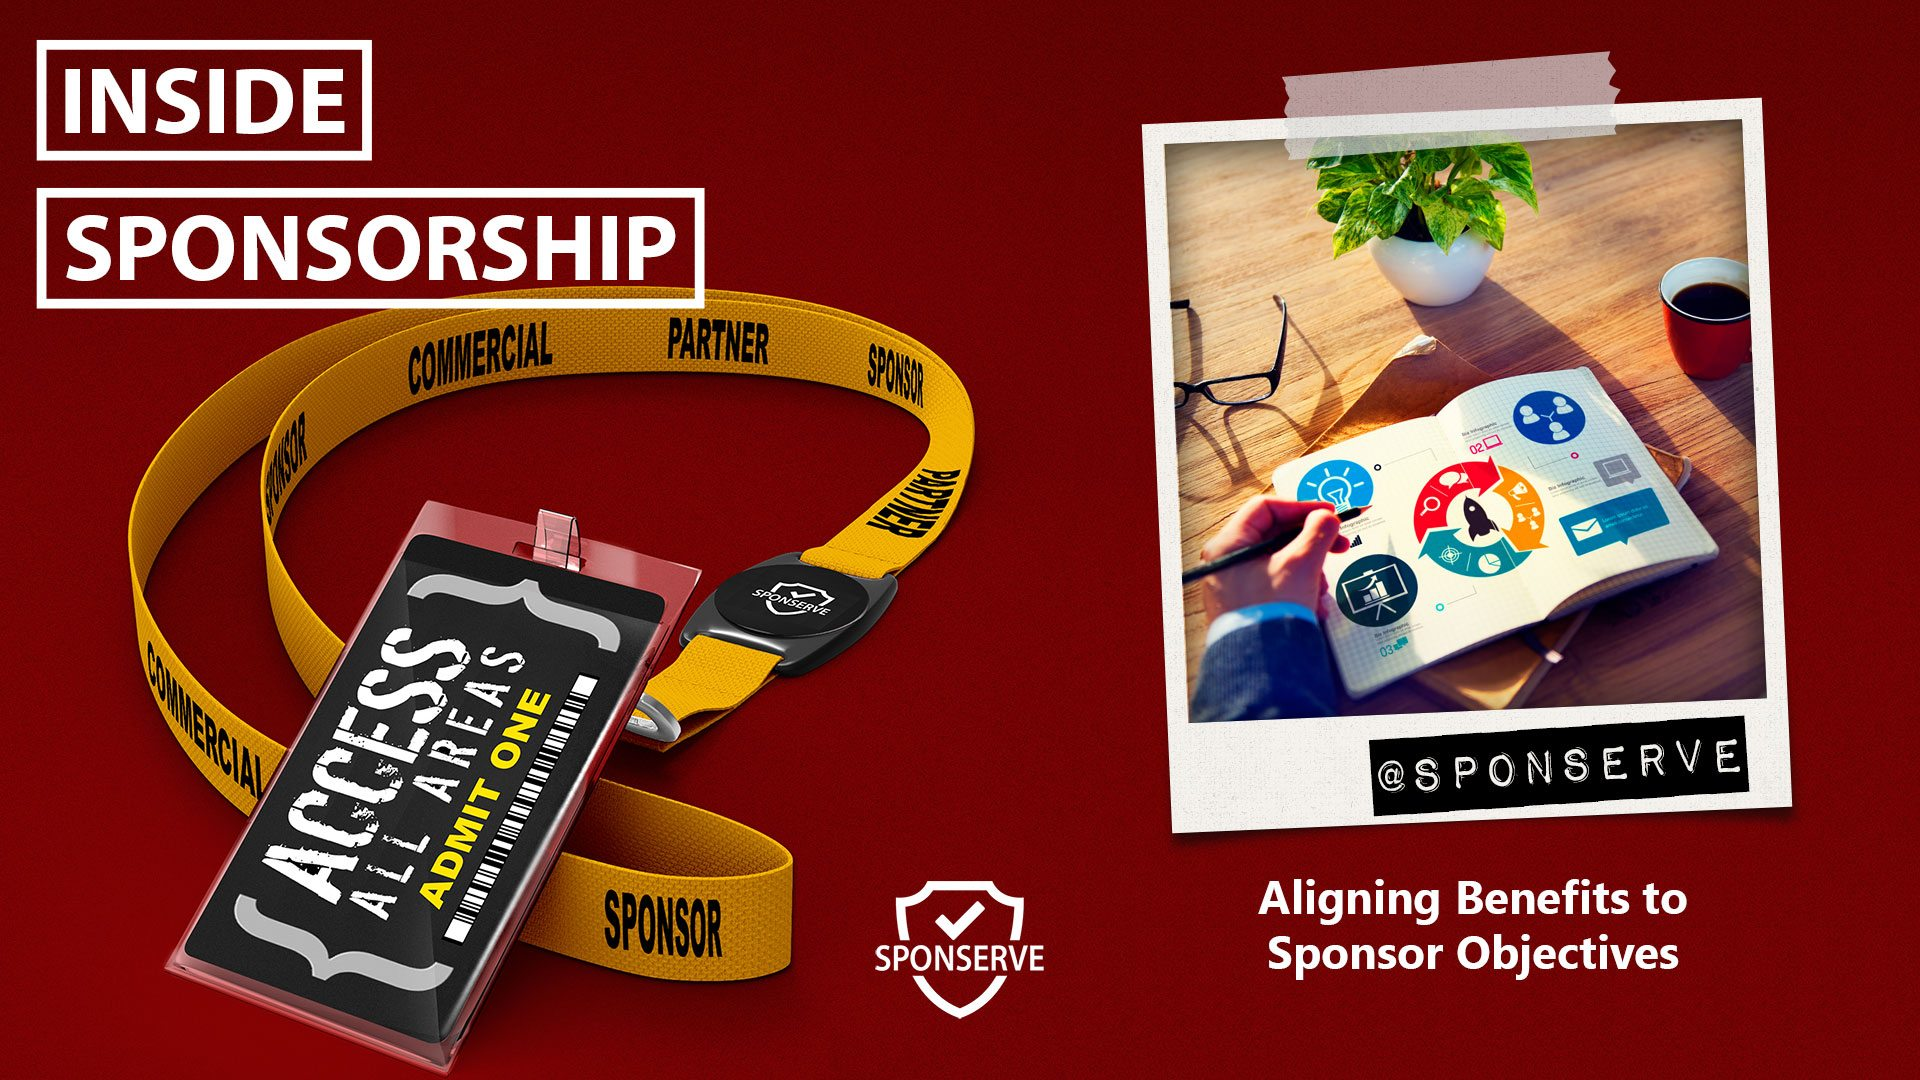 Inside Sponsorship Aligning Benefits To Sponsor Objectives